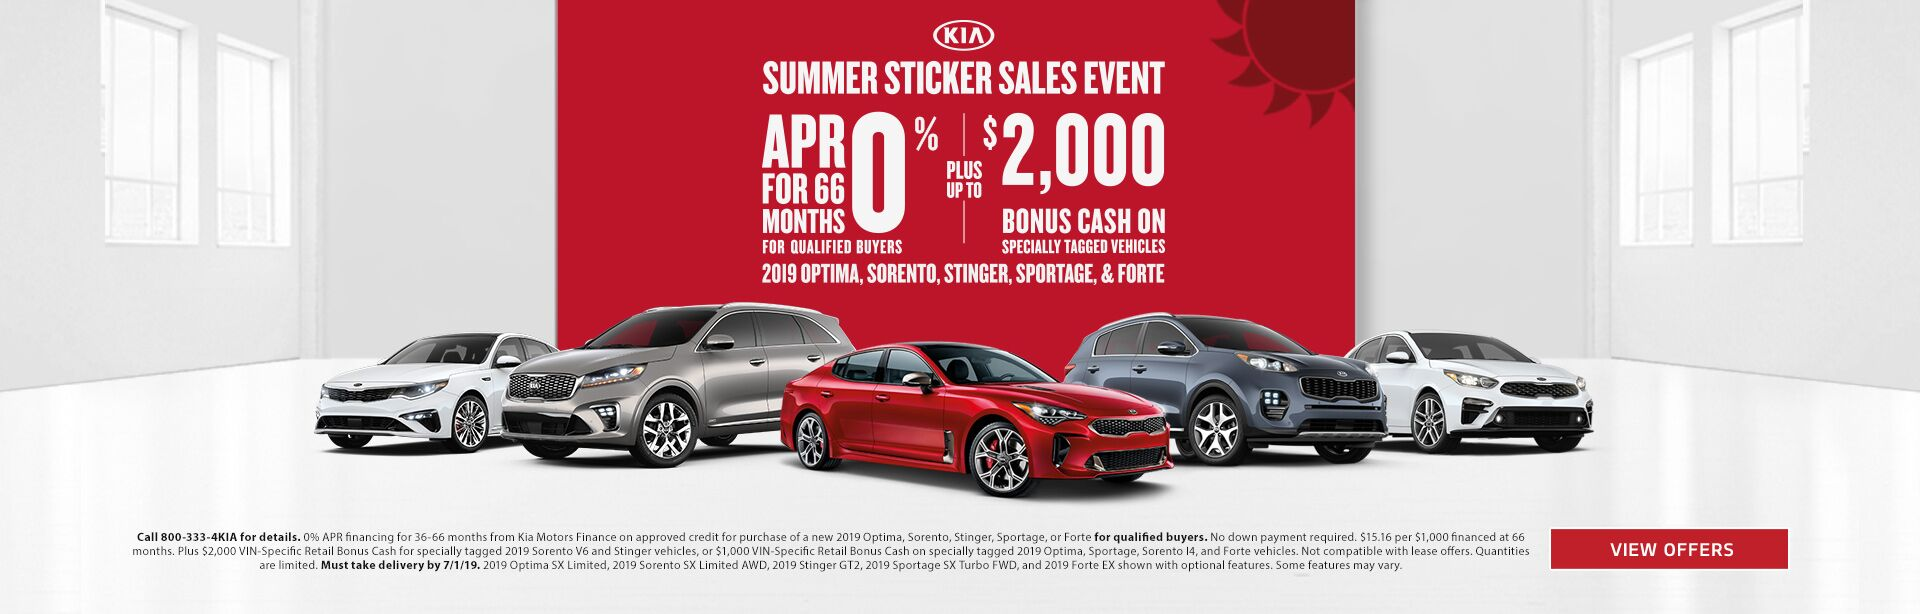 Summer Sticker Sales Event